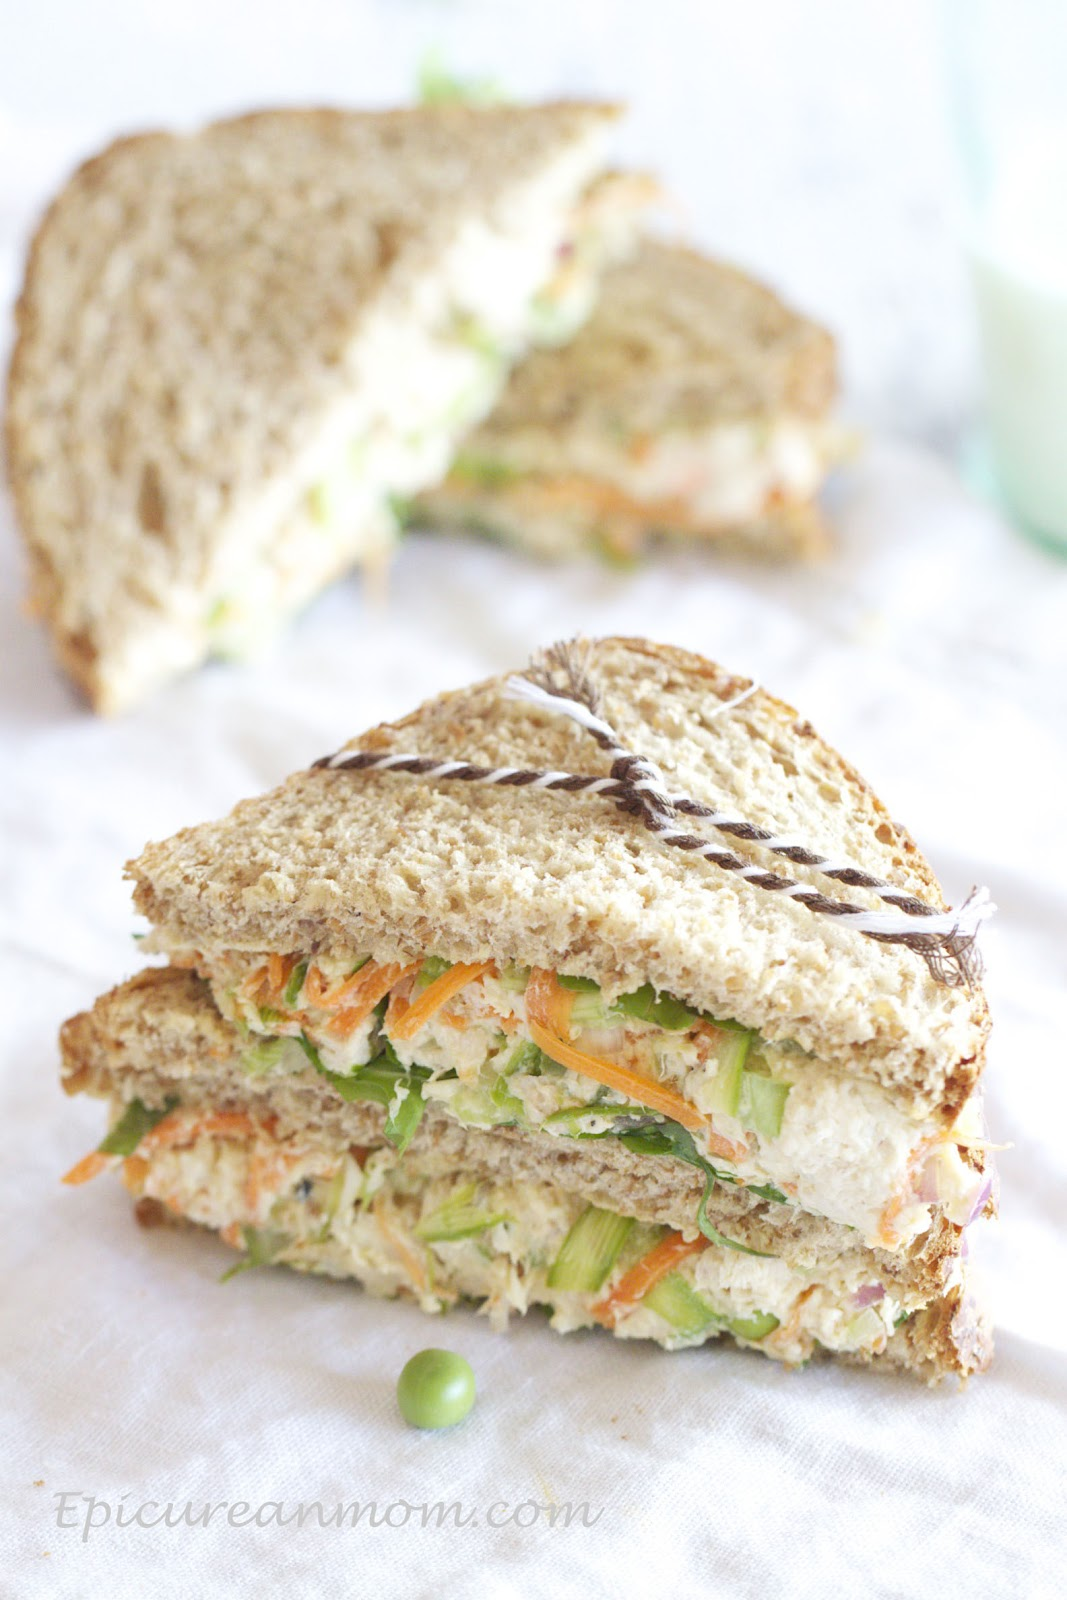 Epicurean Mom Healthy Chicken Salad Sandwich Recipe